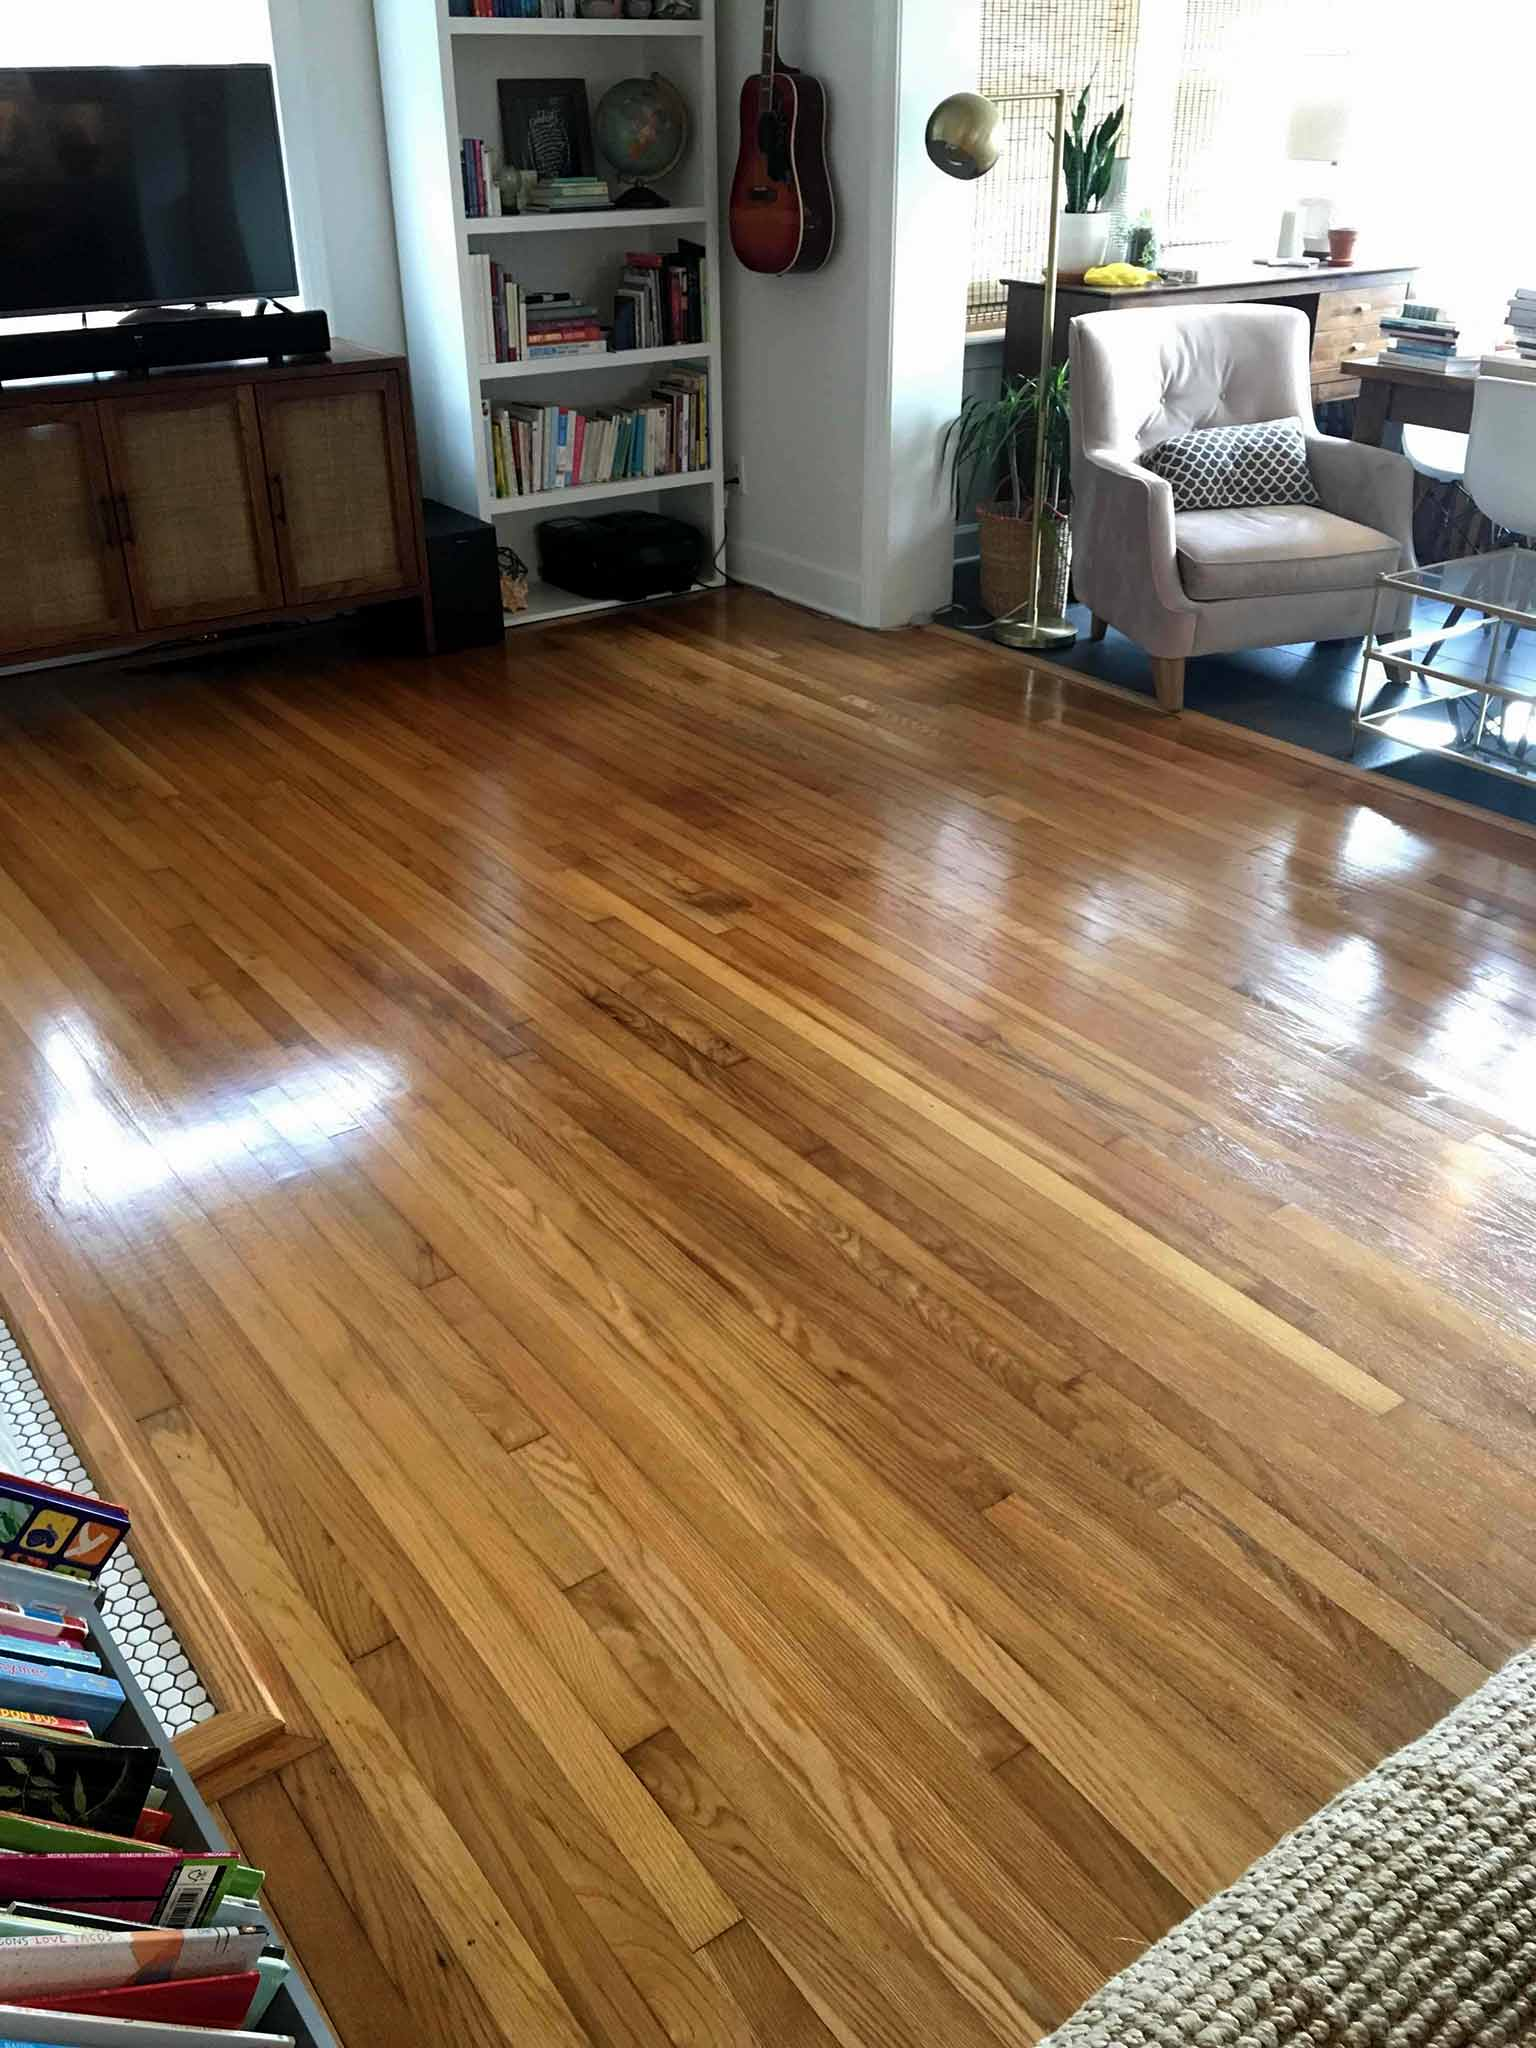 shiny hardwood floors